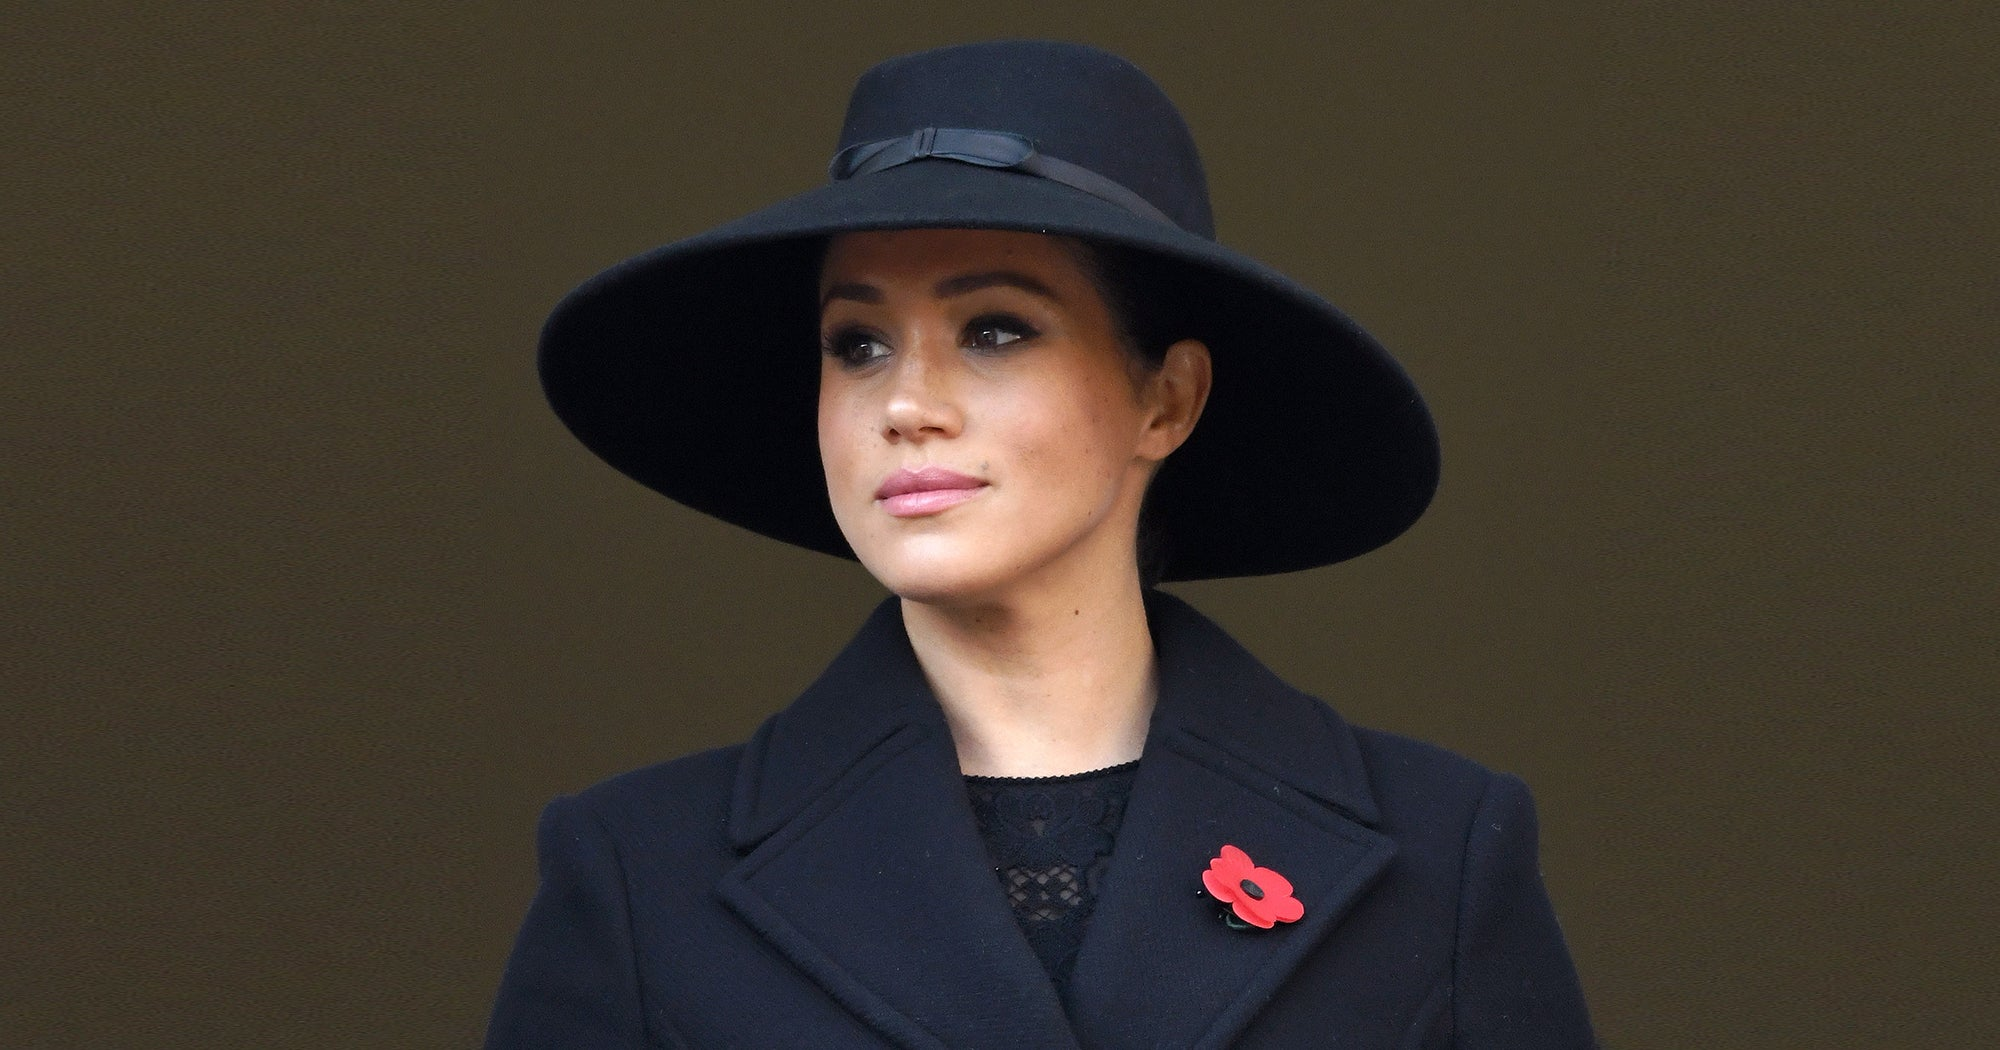 Meghan Markle Didn't Stand With The Queen At Remembrance Day — But It's Not Royal Shade